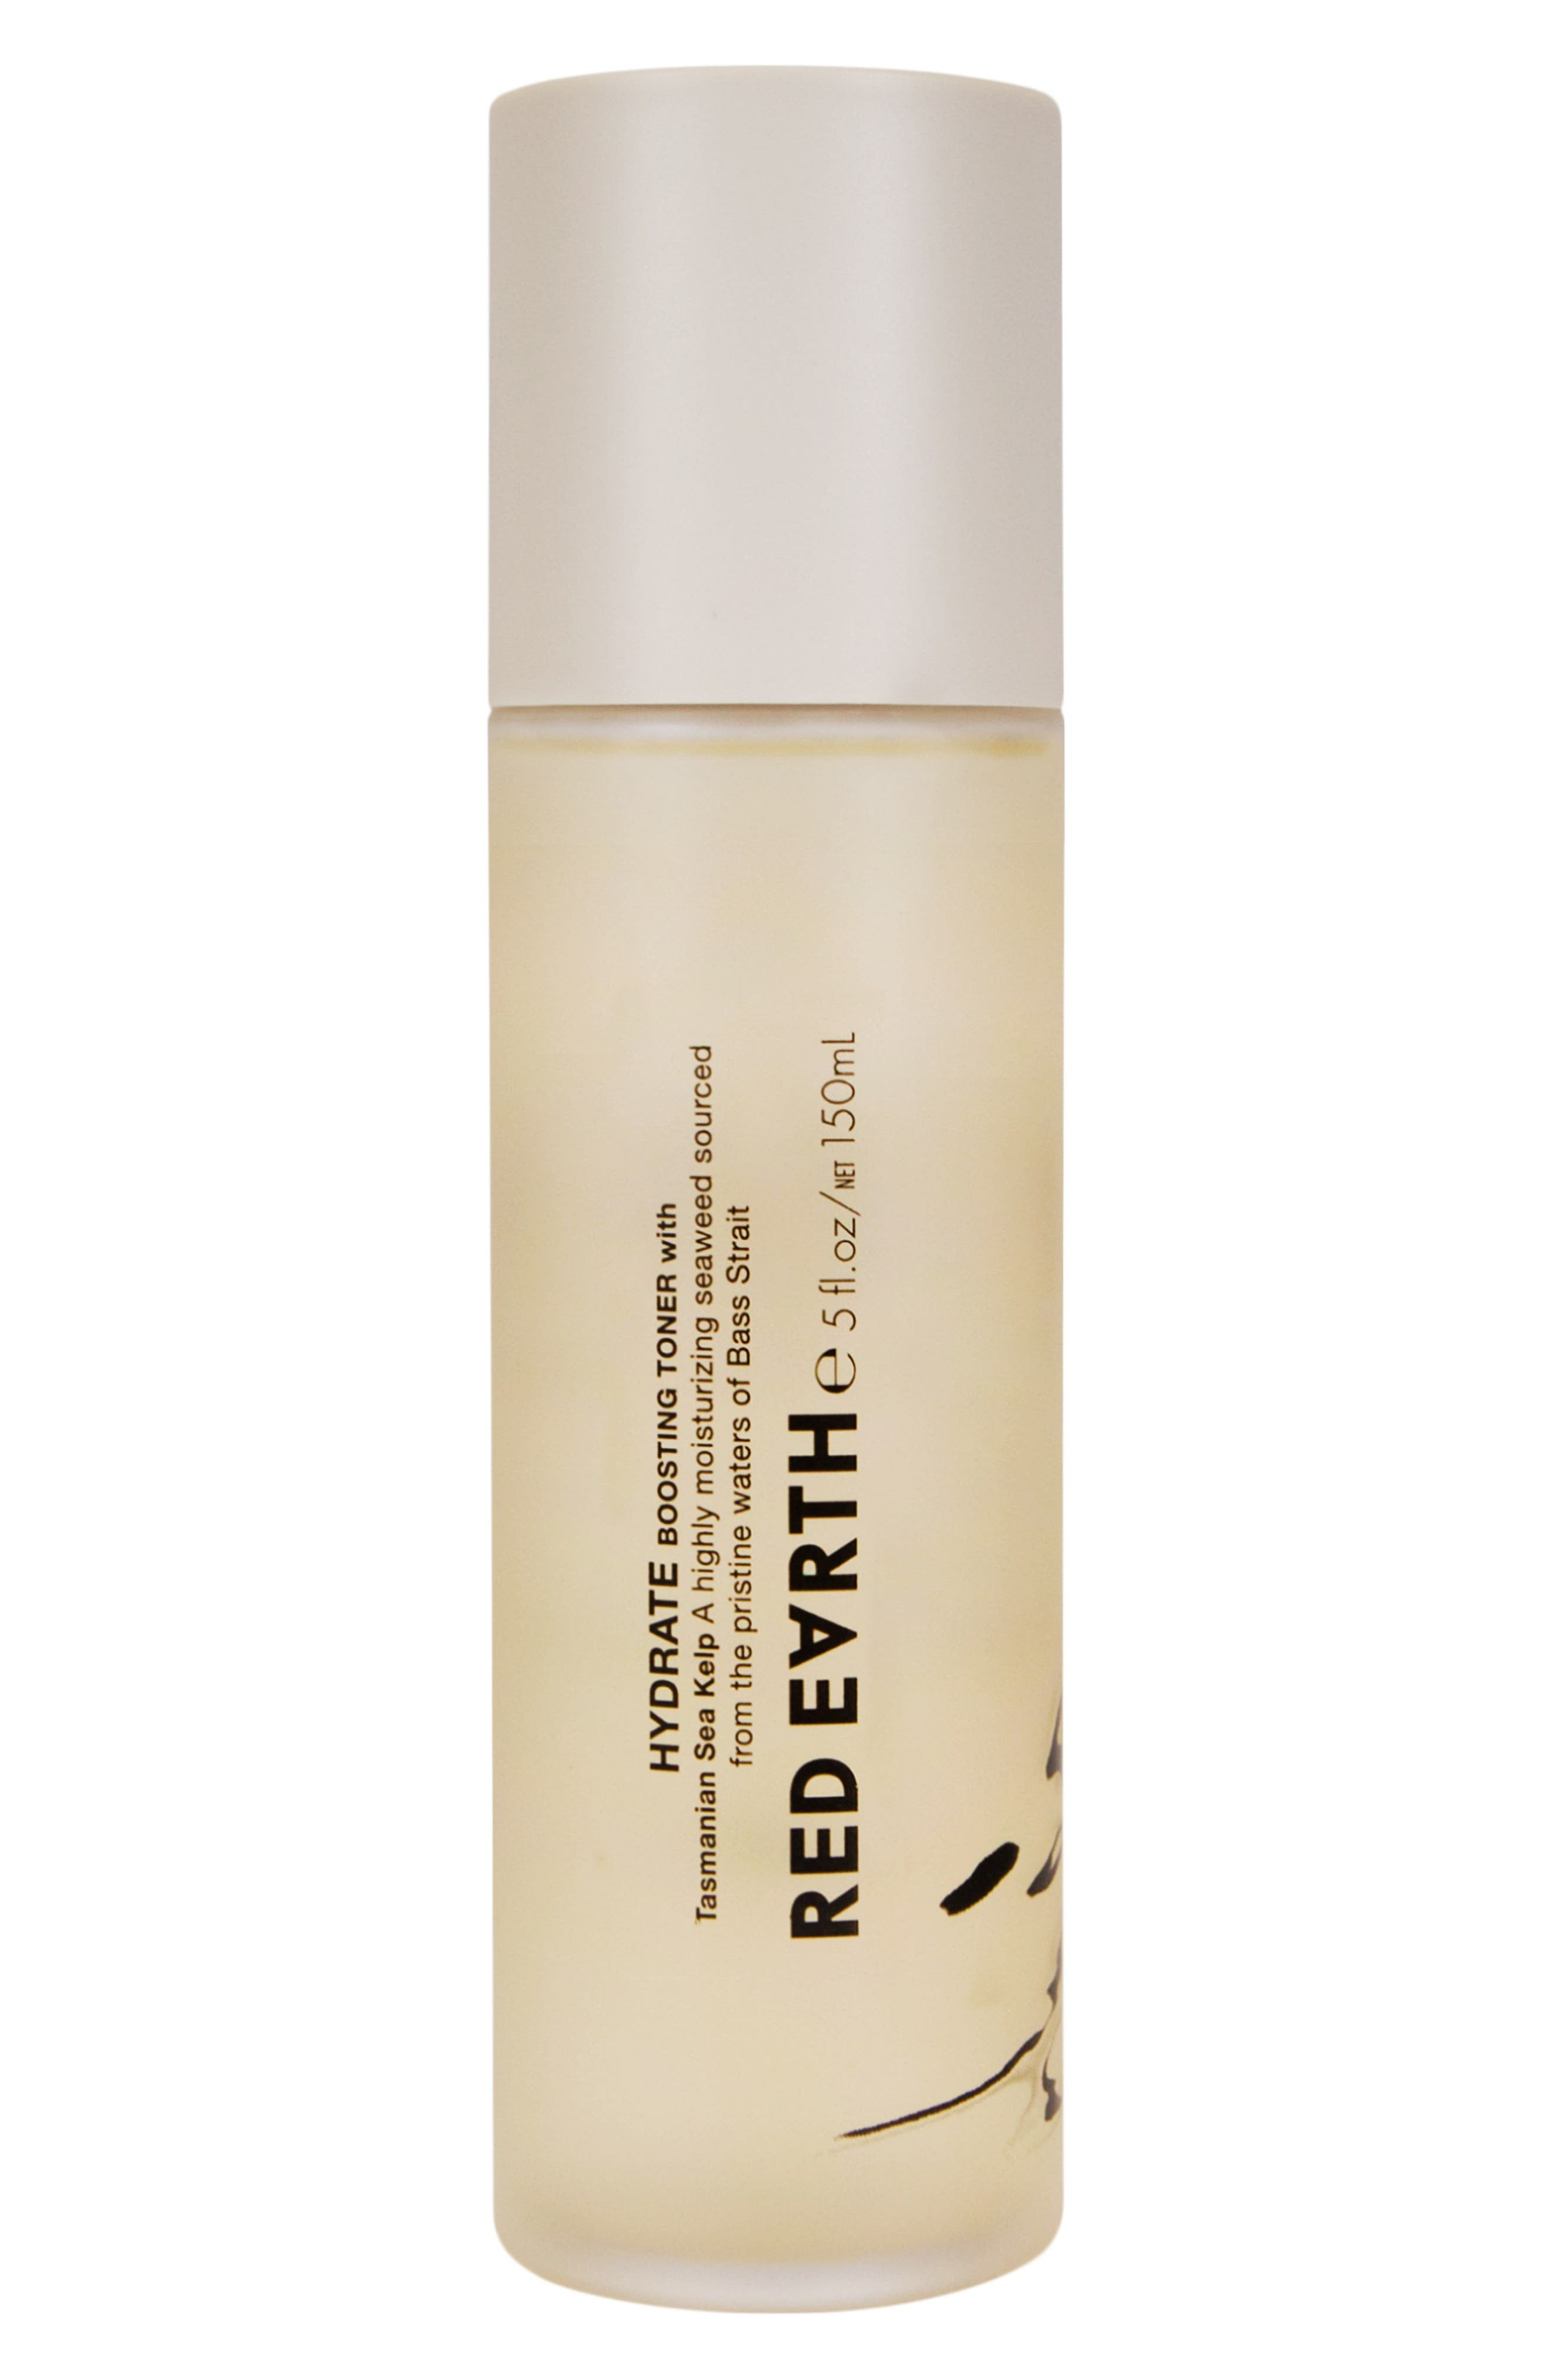 Hydrate Boosting Toner,                         Main,                         color, No Color